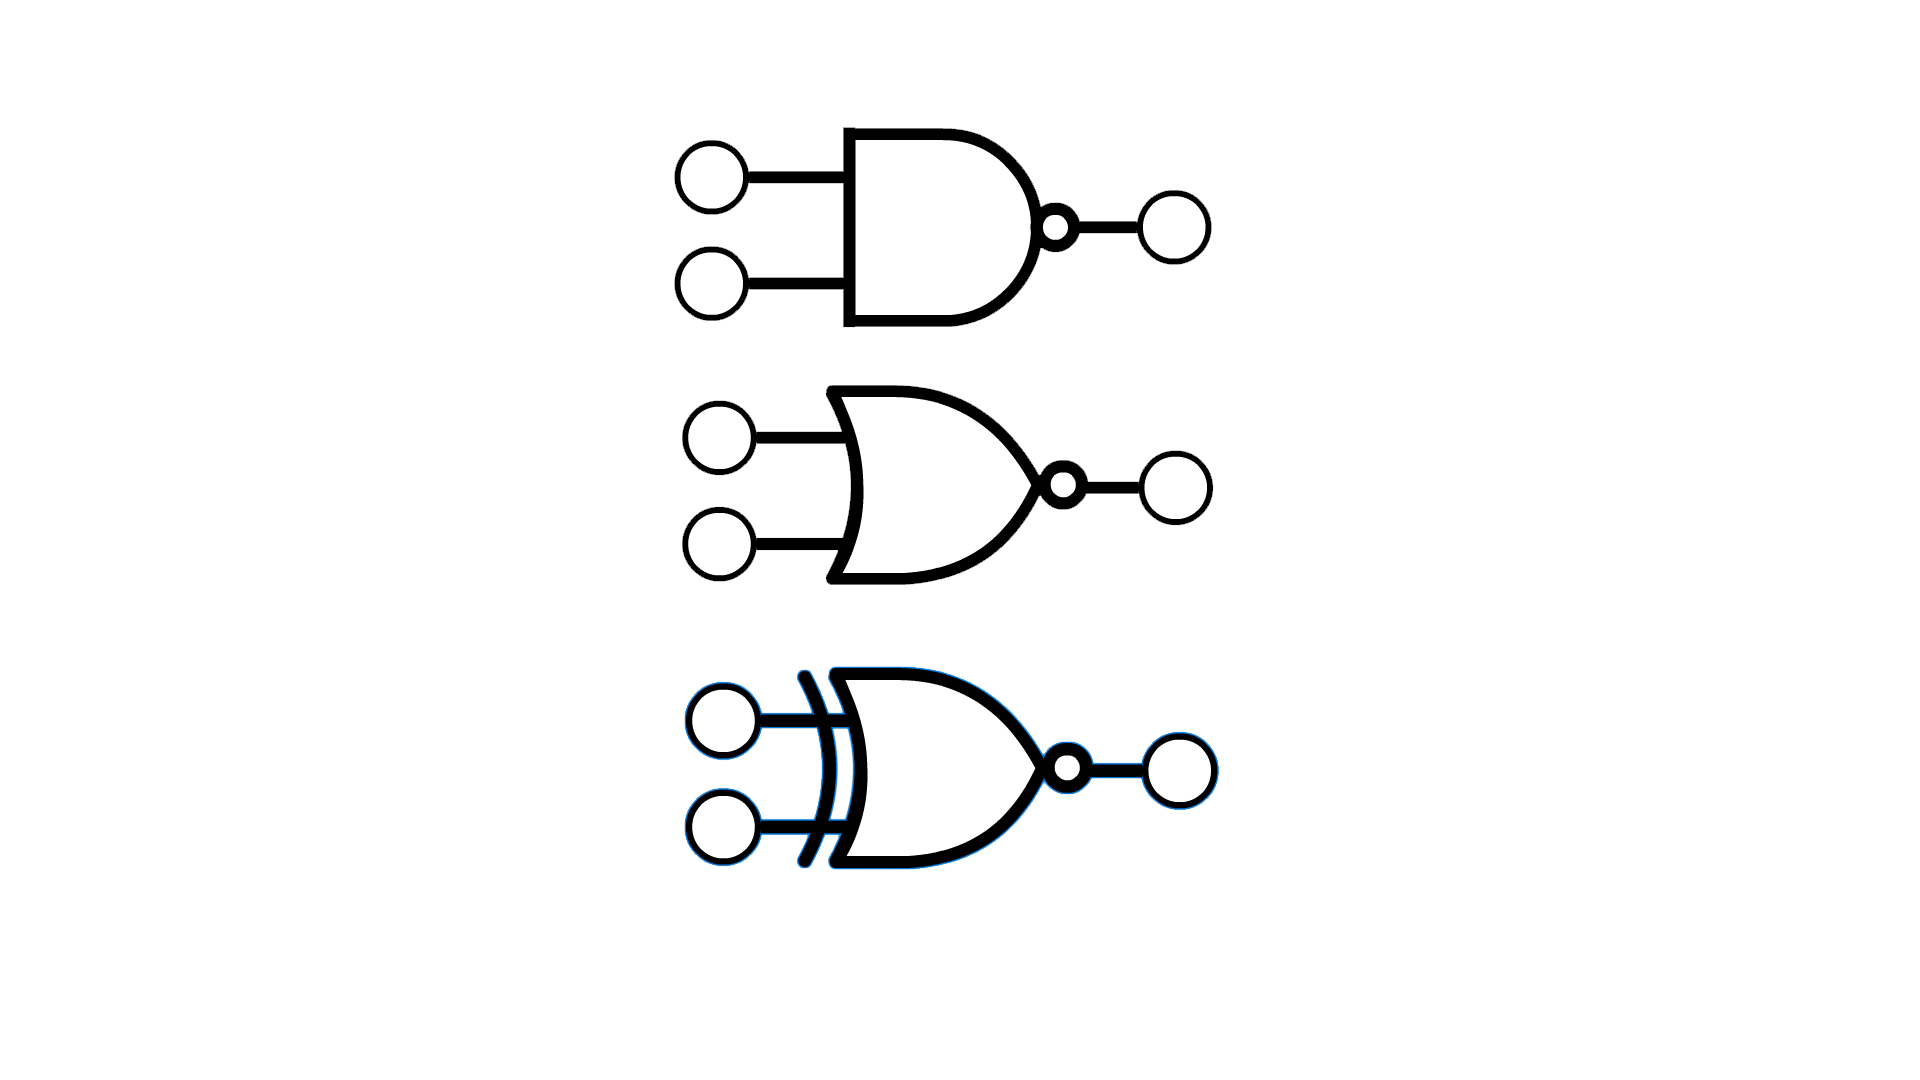 Representations of the NAND, NOR and XNOR gate symbols, which are the same as the AND, OR and XOR gate symbols, except with the addition of a small circle between the main shape and the output, touching the right-most part of the main shape.